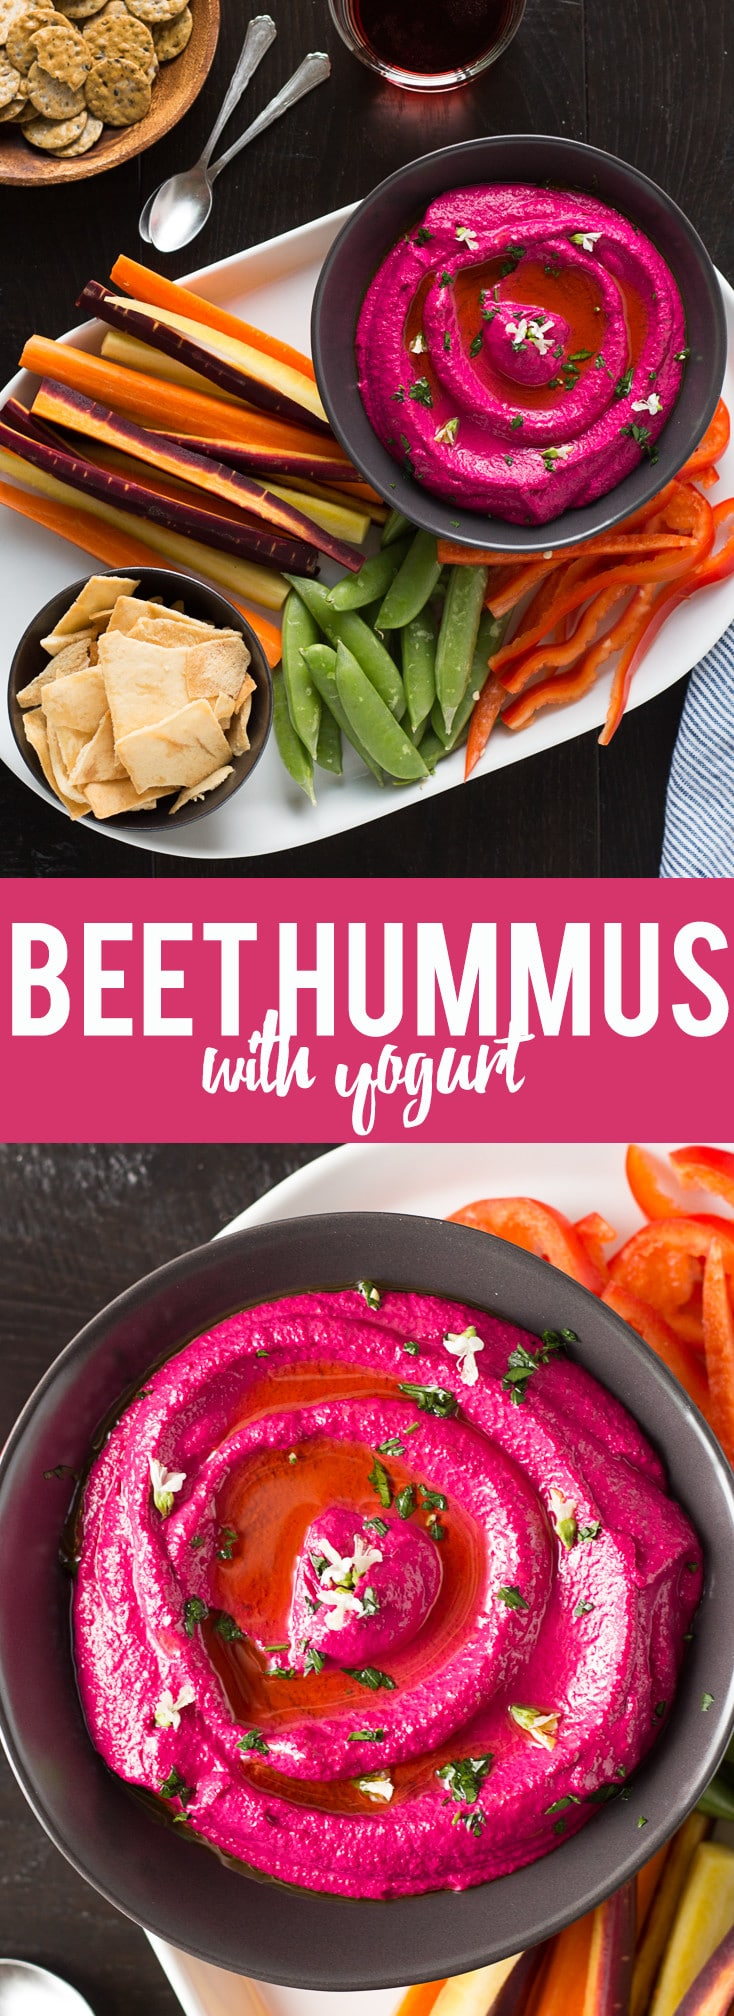 This Creamy Beet Hummus with Yogurt will soon be your favorite way to eat your beets! Roasted beets, tahini and yogurt are blended together to make a creamy and healthy dip with a bright pink color that will blow your mind!